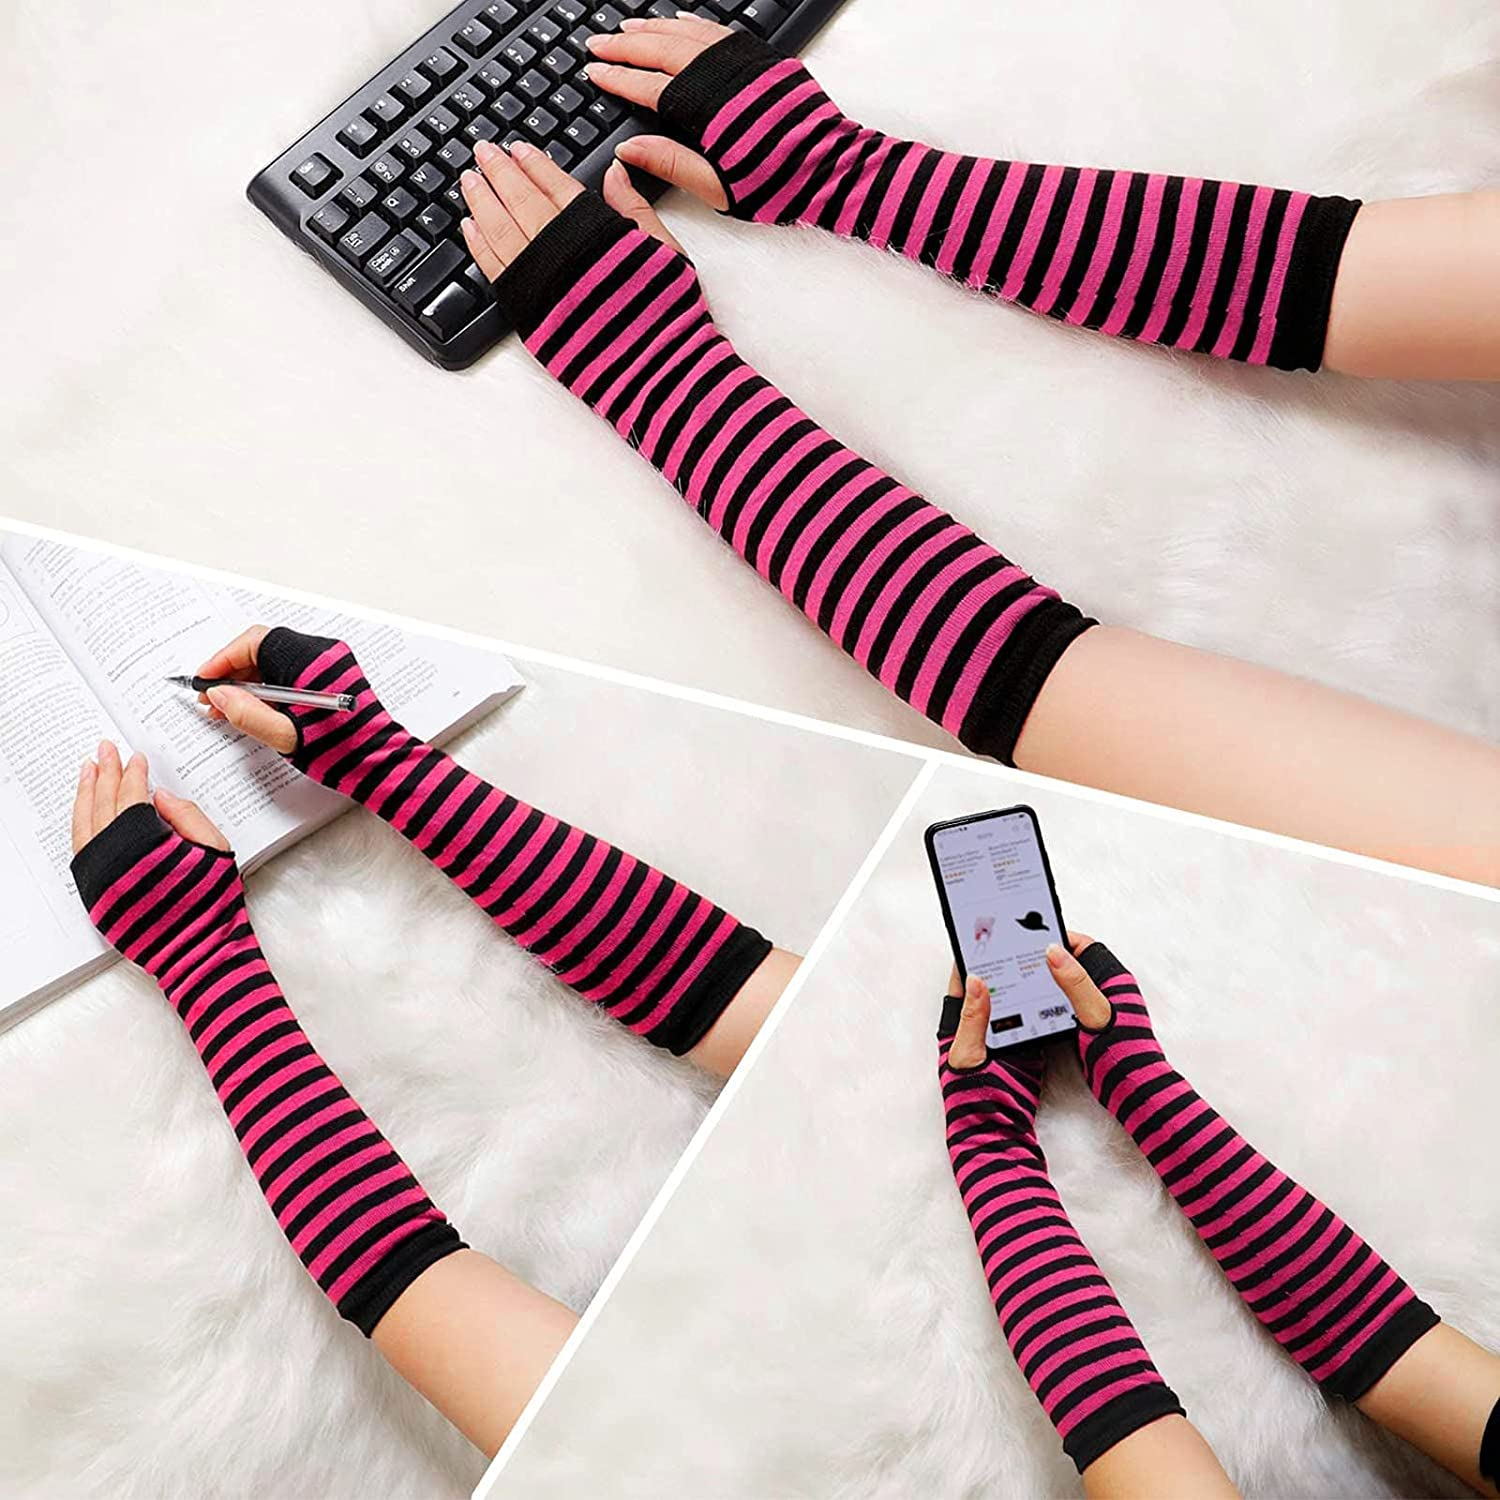 Fingerless Gloves Long for Women Stripes Long Arm Warmer Knitted Punk Gothic Rock Comfy Thumbhole Glove Mittens